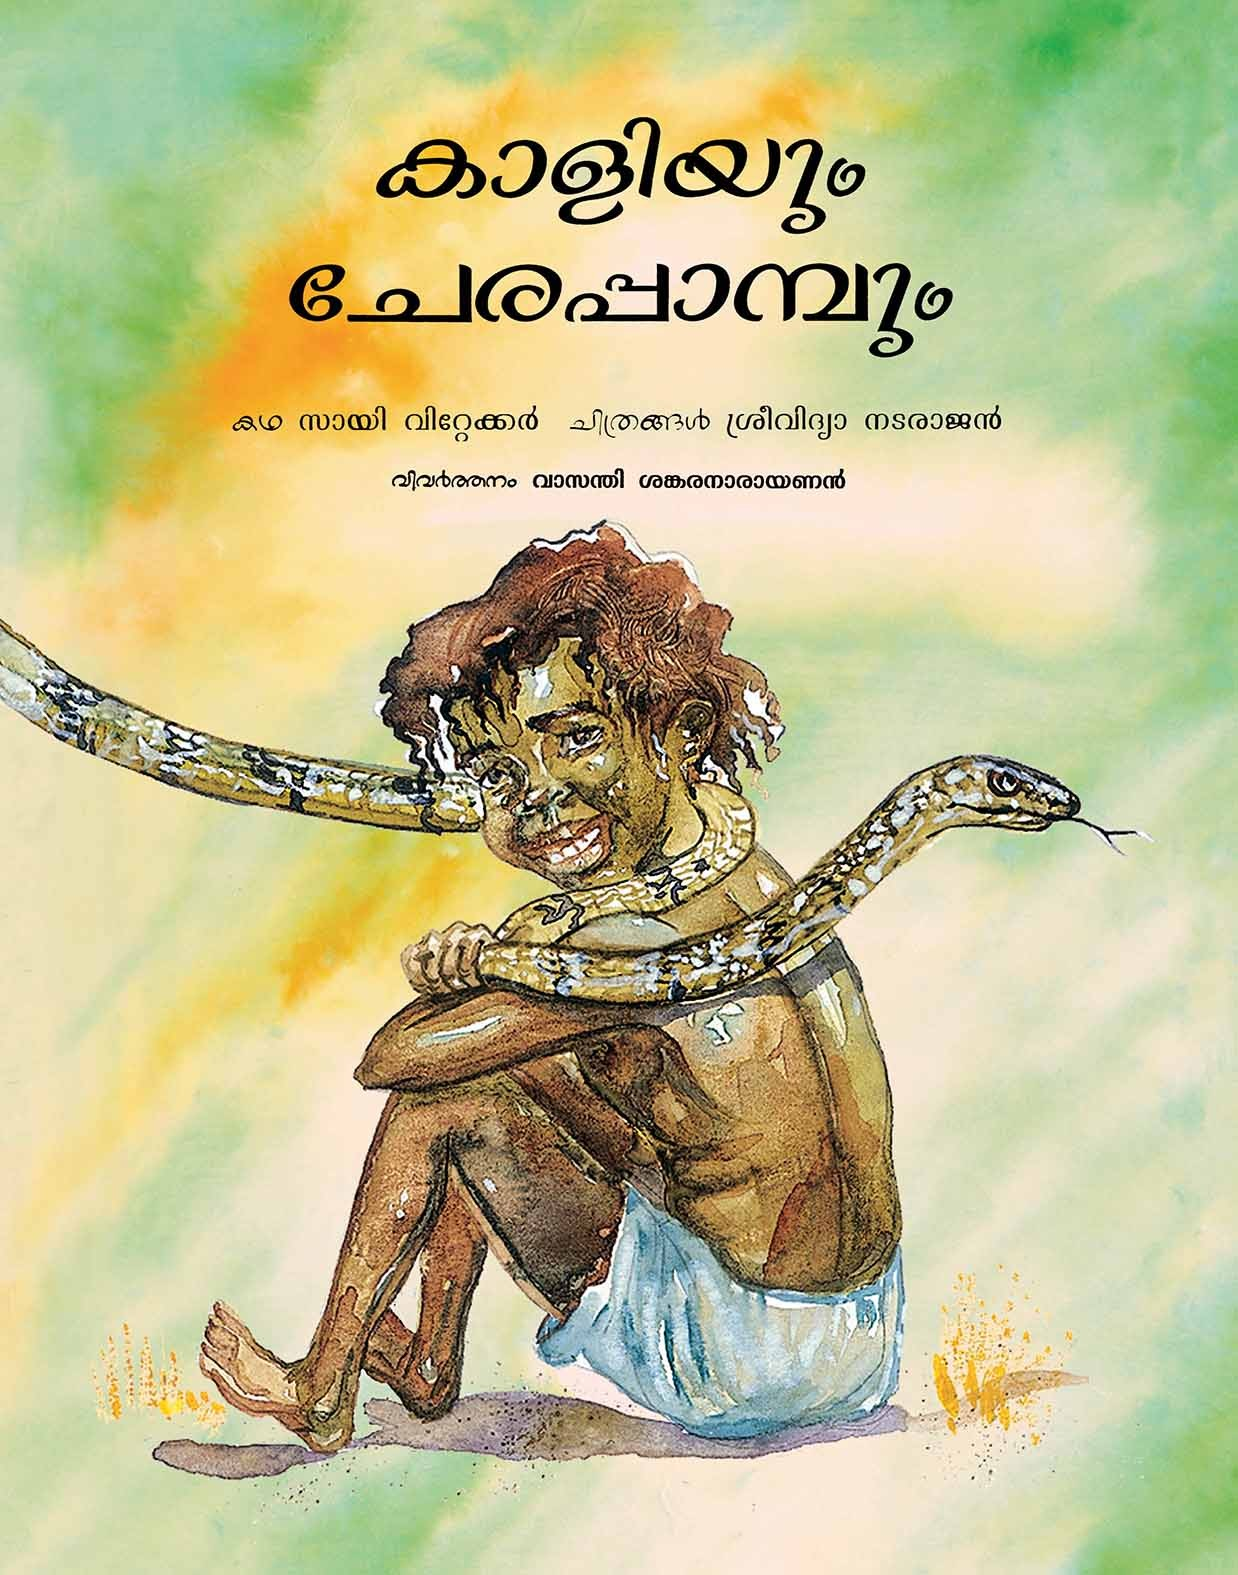 Kali And The Rat Snake/Kaaliyum Cherapambum (Malayalam)